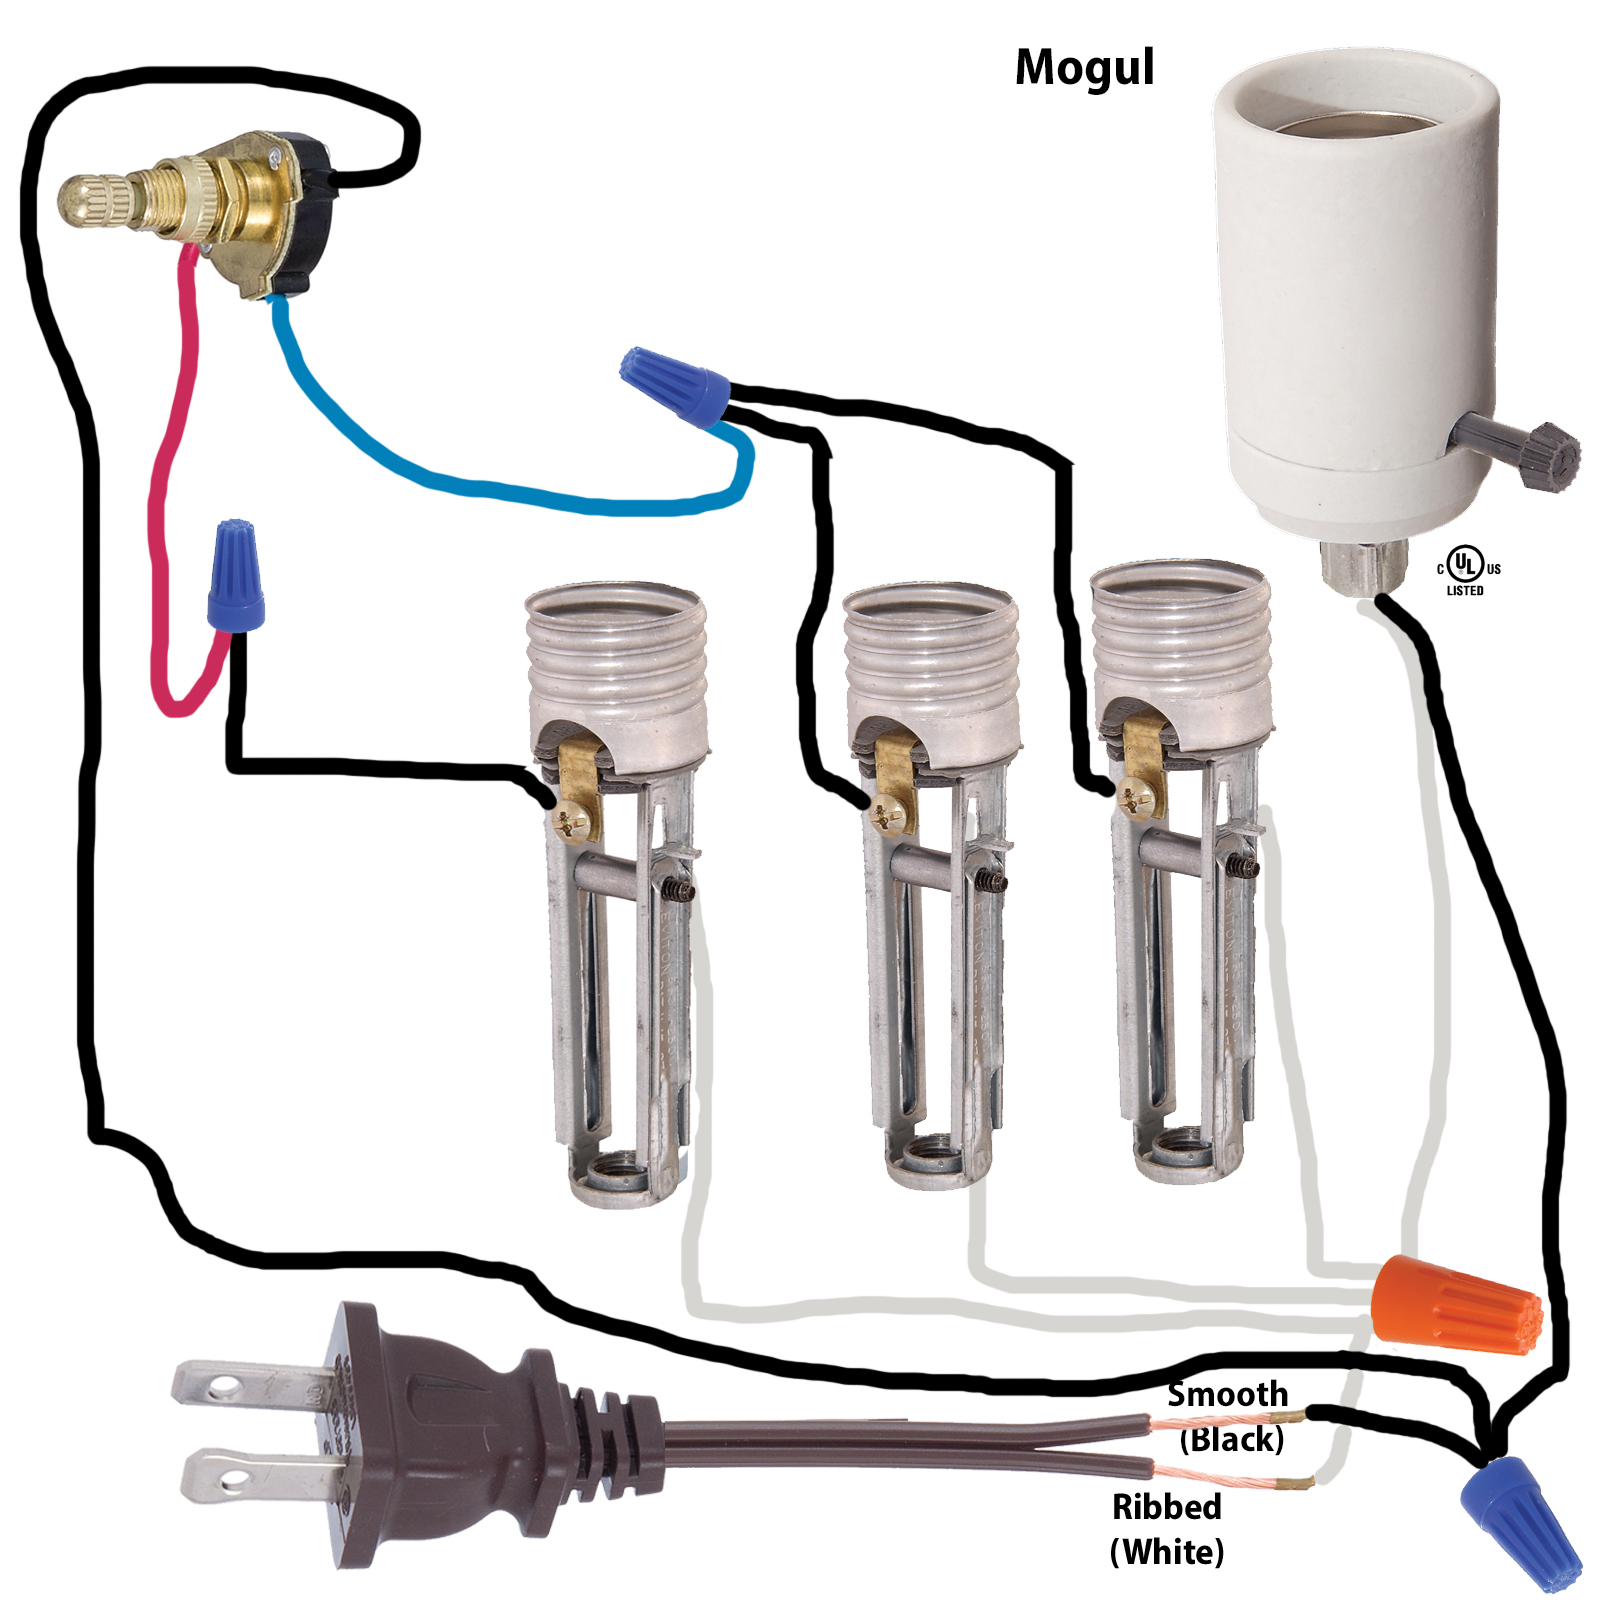 Lamp Parts And Repair | Lamp Doctor: Floor Lamp With Mogul Socket - Lamp Wiring Diagram